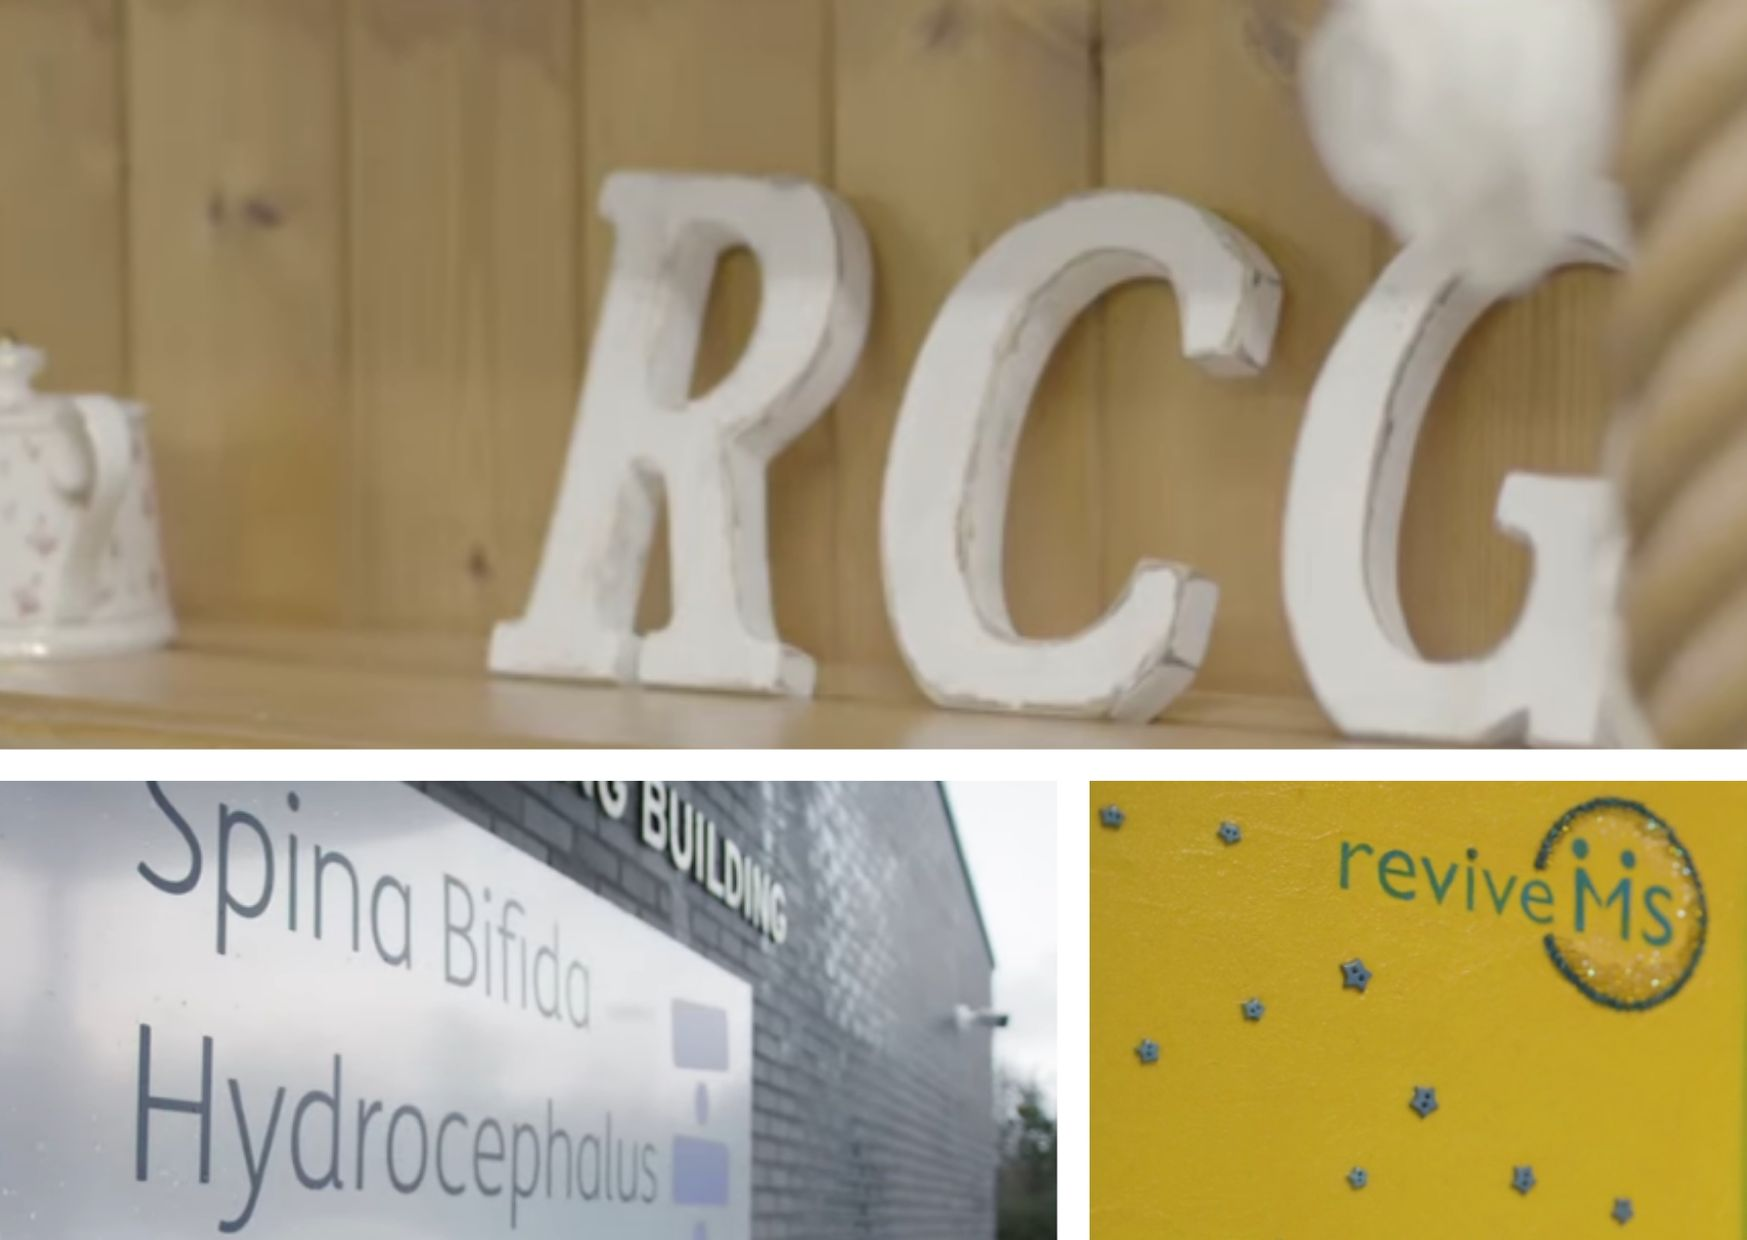 Stills from the three videos with logos of each organisation.